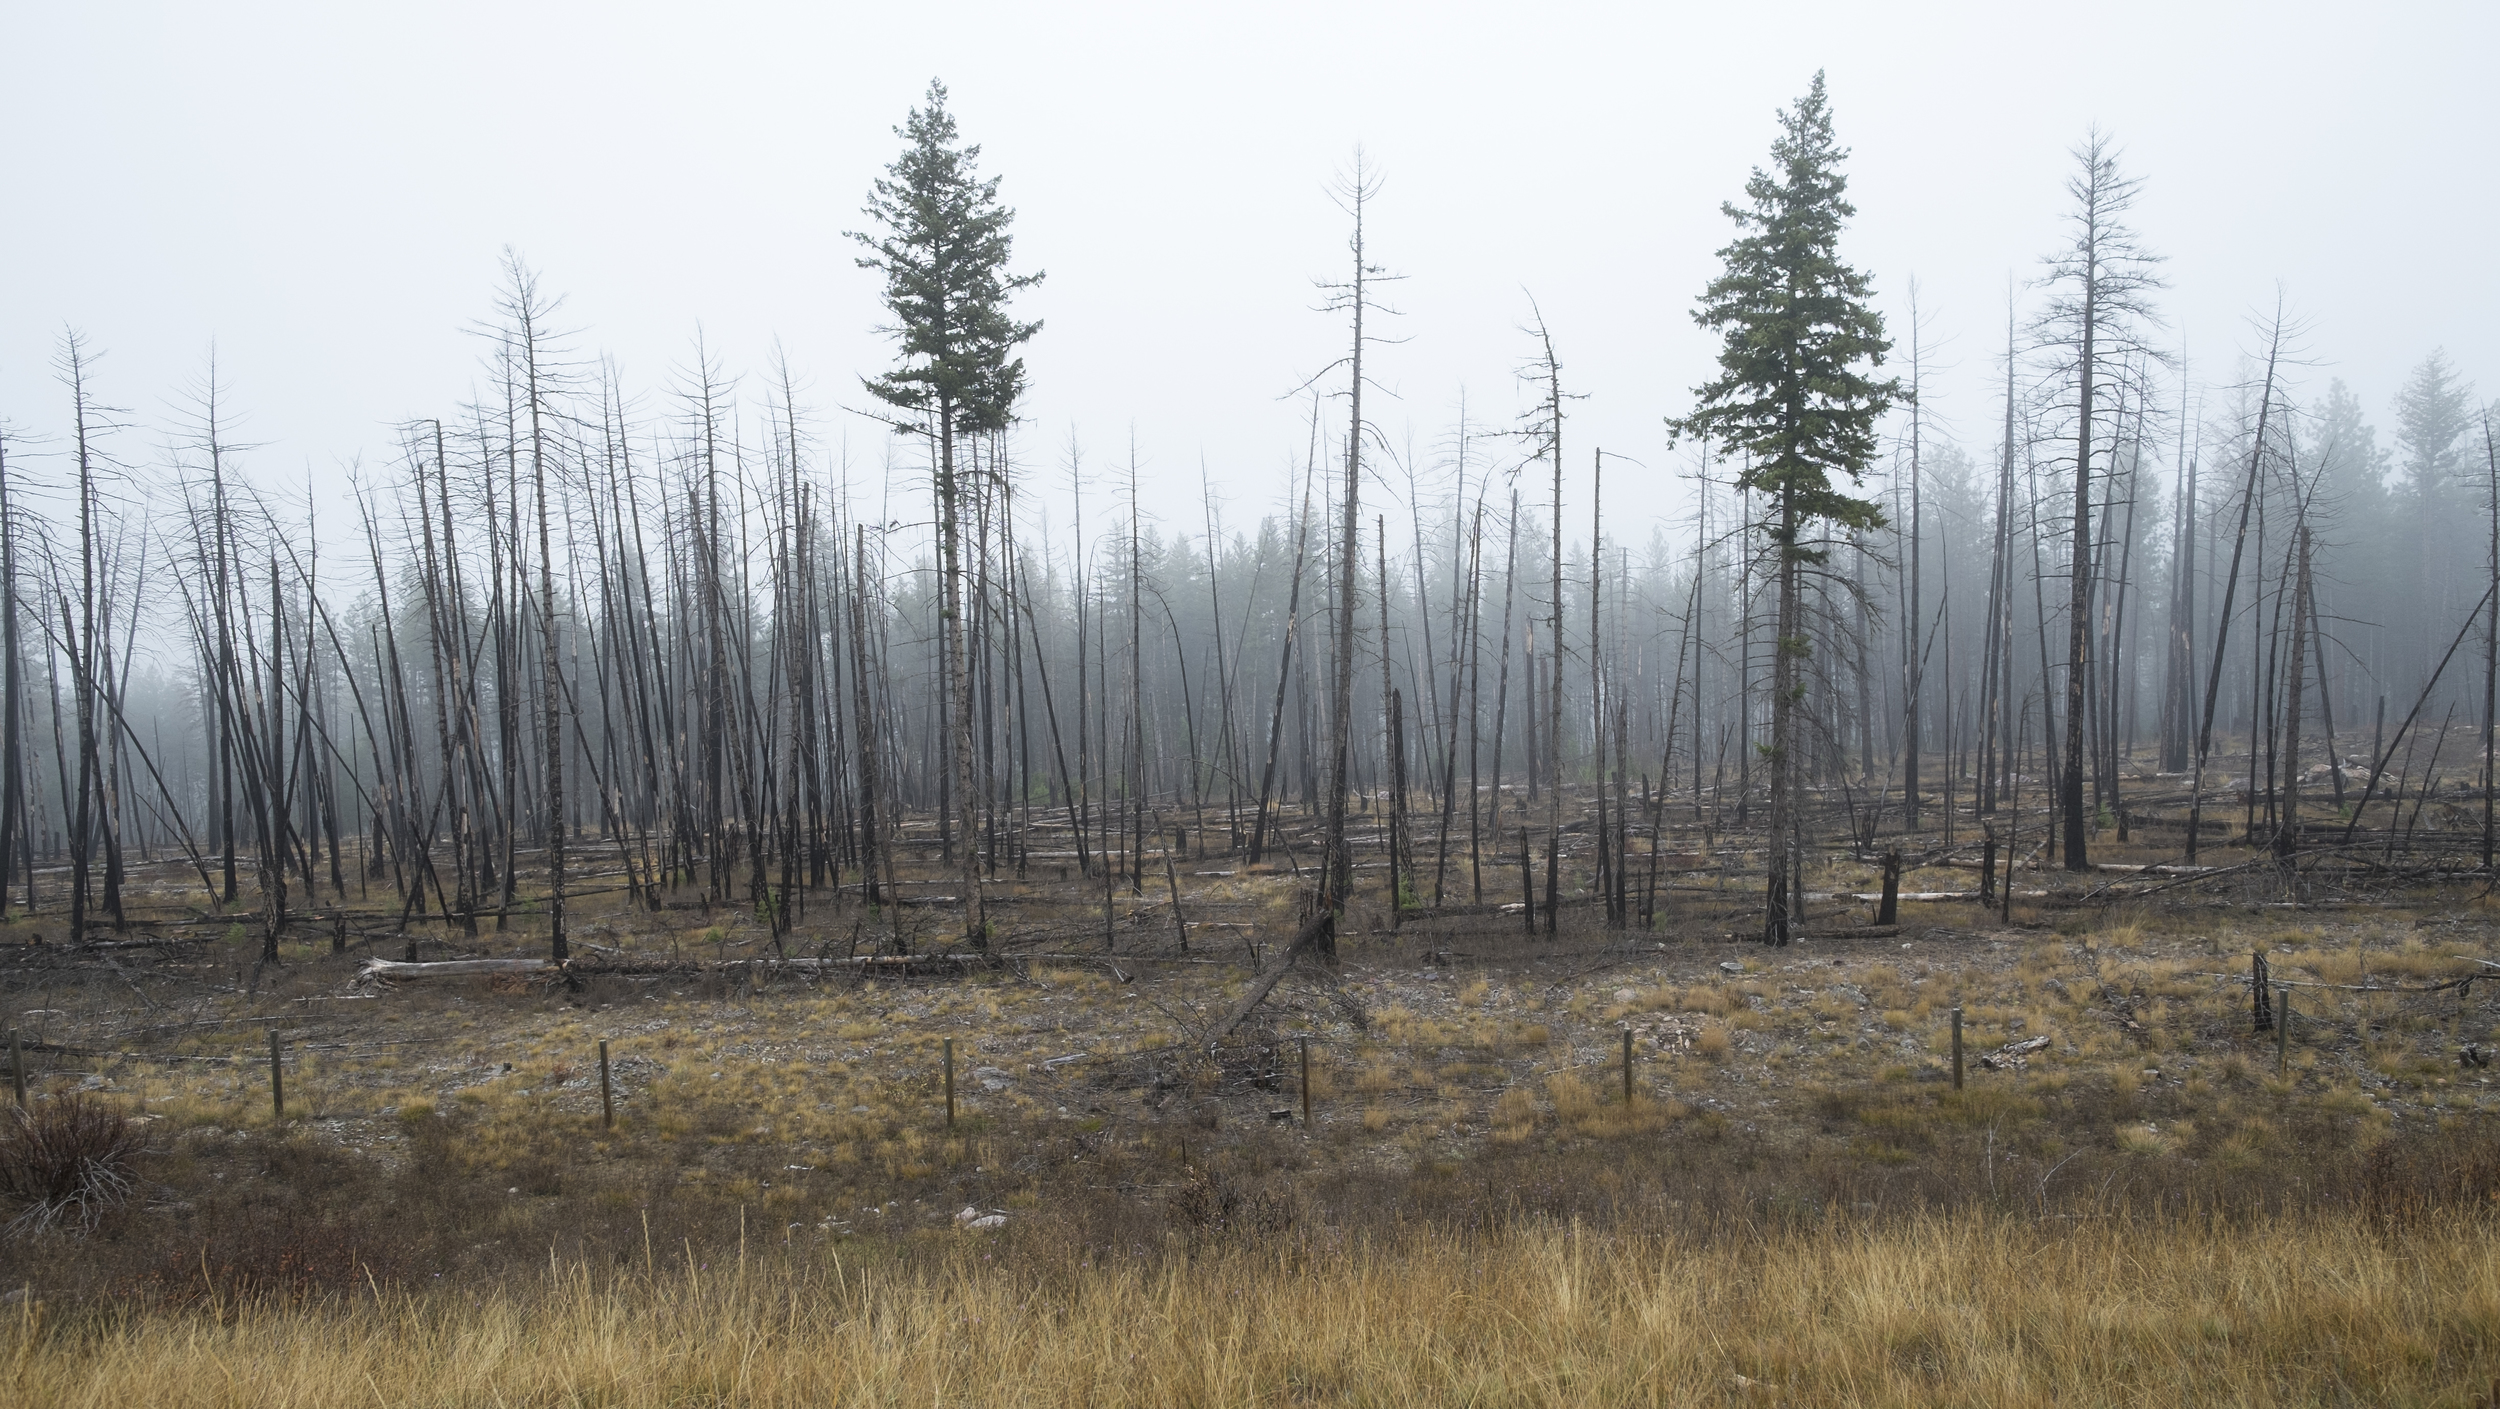 Burned Forest, north of Missoula, Montana 2015